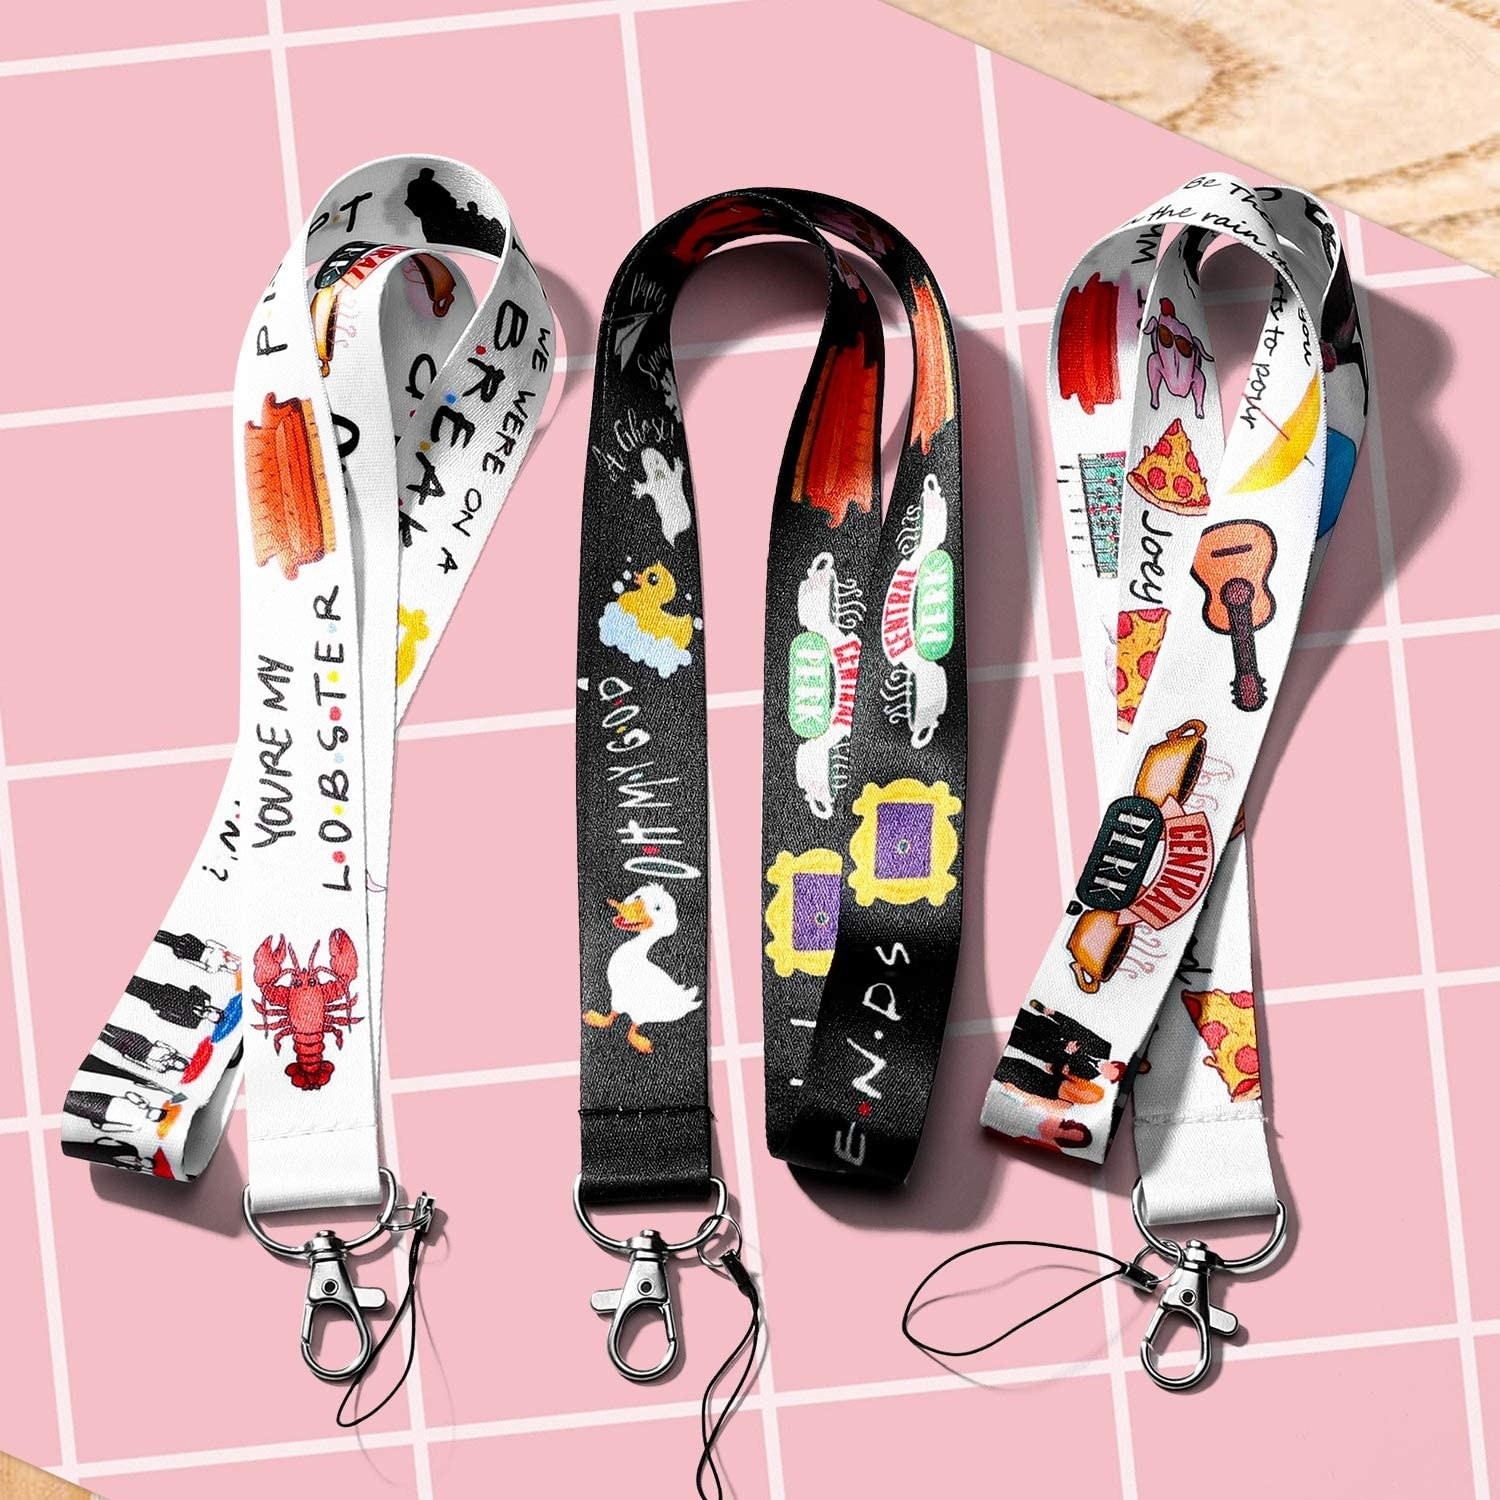 three lanyards with notable friends symbols like a lobster